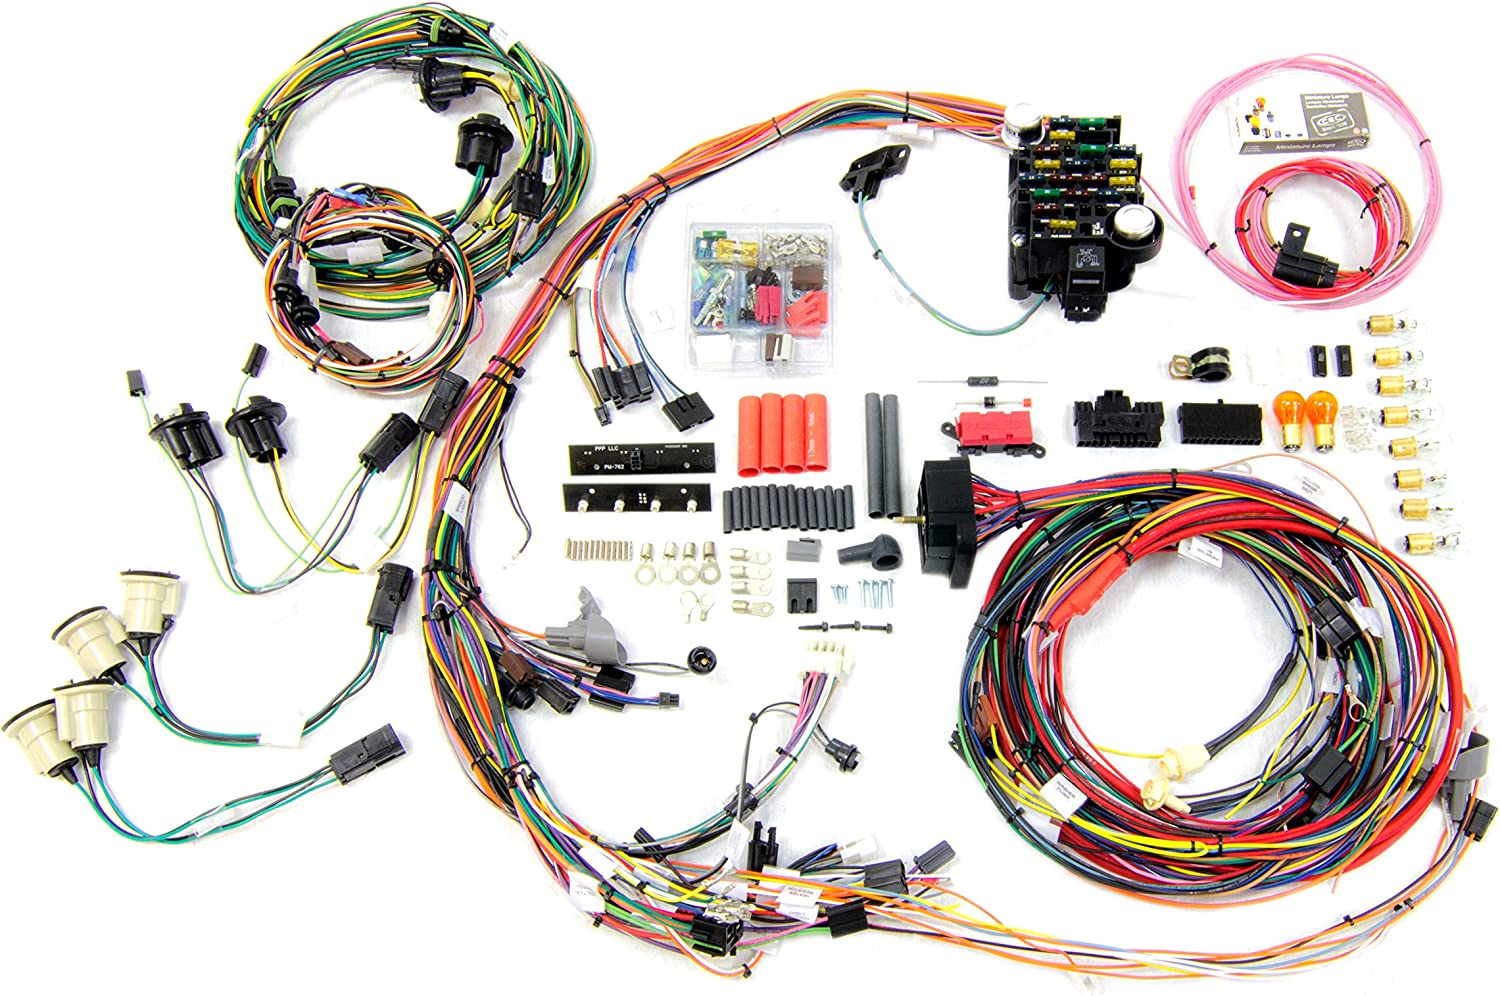 [DIAGRAM_34OR]  Amazon.com: Painless Performance 20202 Direct Fit Camaro Harness (1969) -  26 Circuits: Automotive | Original 68 Camaro Wiring Harness Complete |  | Amazon.com